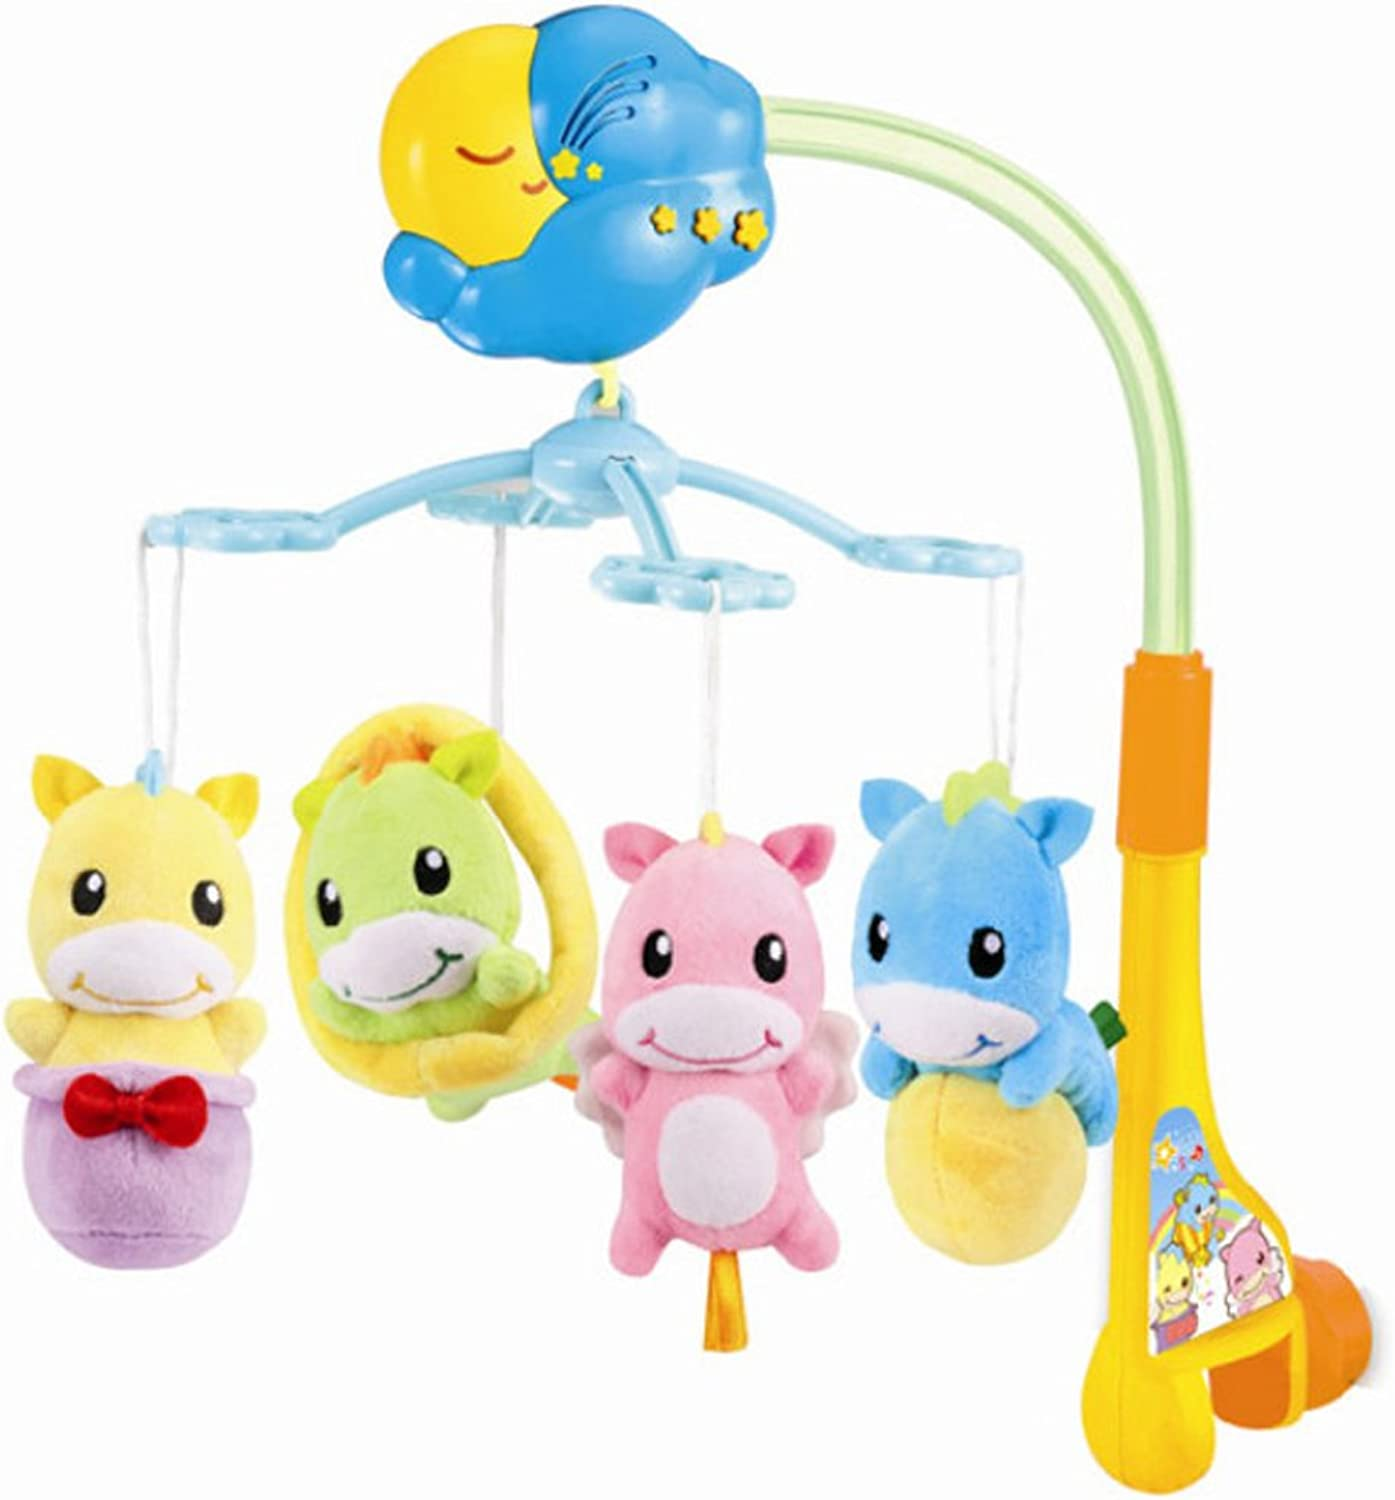 Auby Baby Crib Bell Toy Toddler Mobile Nursery redatable Musical Bed Bell